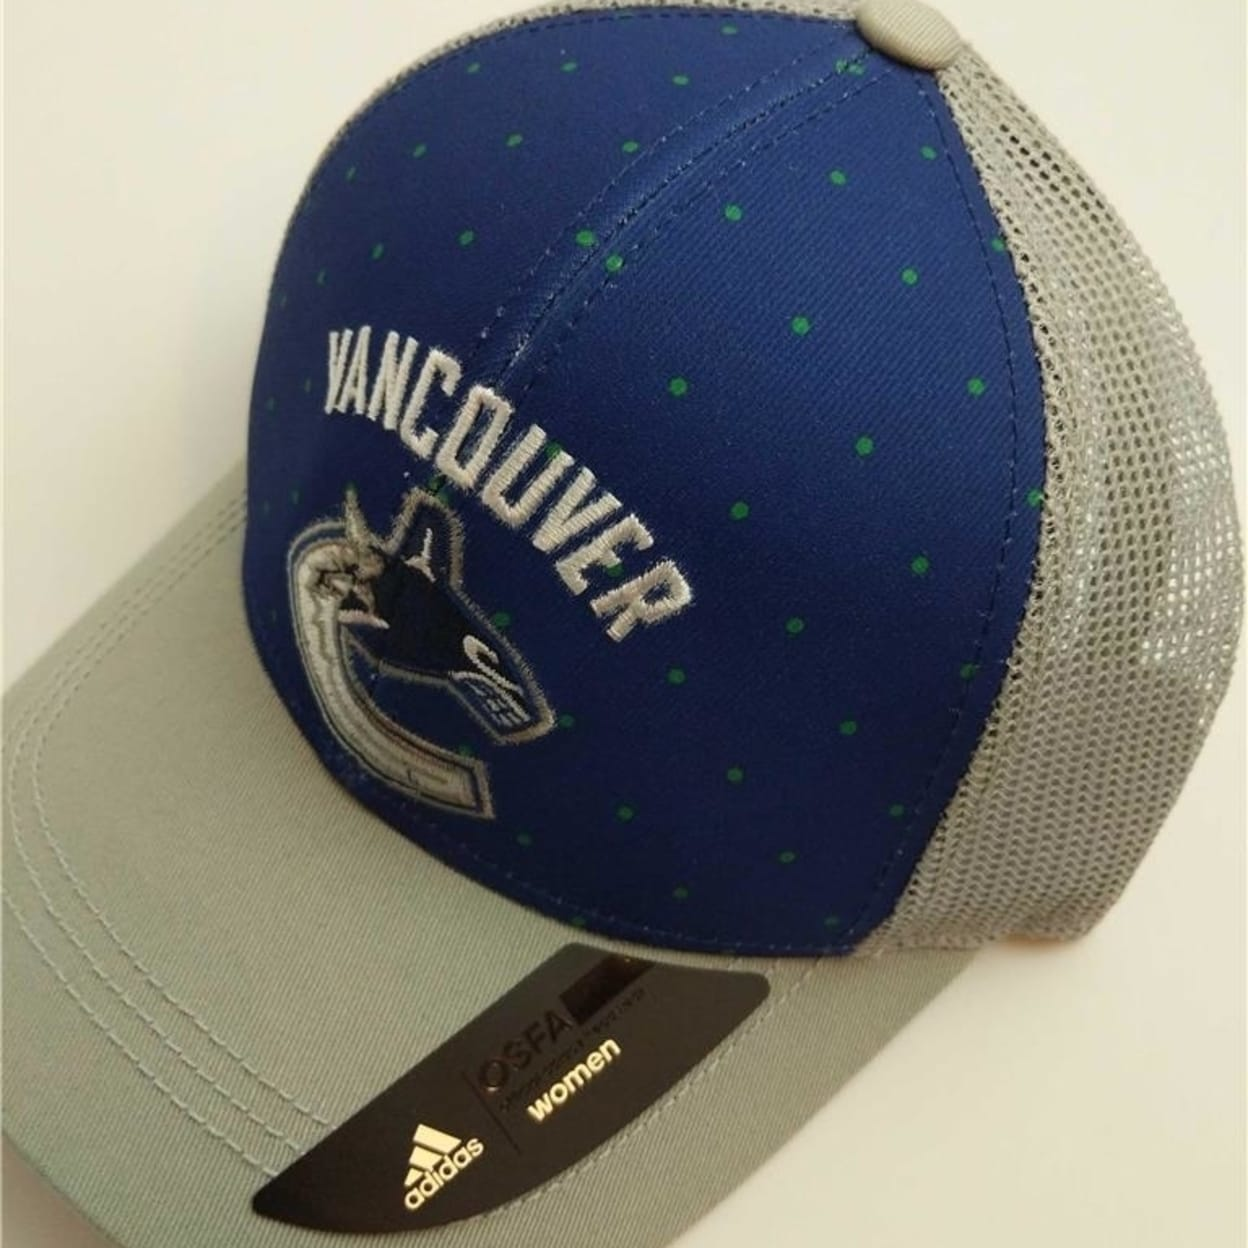 a22f9423d080ec Shop Vancouver Canucks Womens Size Osfa Reebok Adjustable Trucker Hat - Free  Shipping On Orders Over $45 - Overstock - 23071379